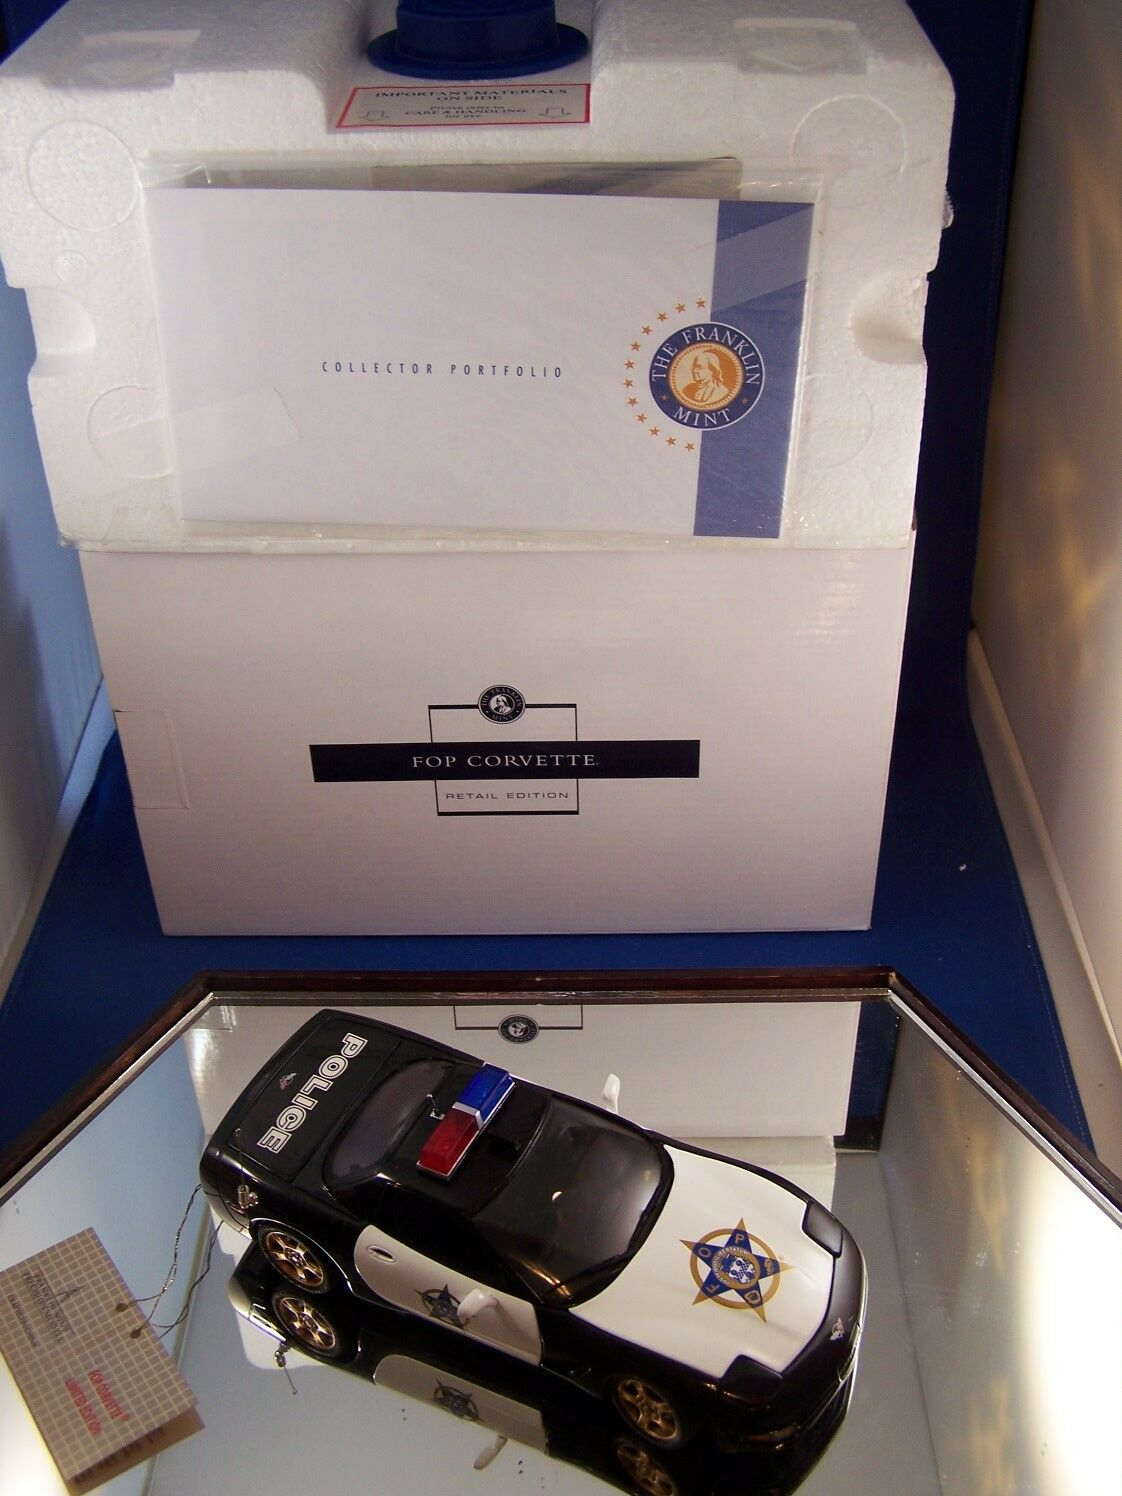 FRANKLIN MINT CHEVROLET CORVETTE POLICE CRUISER MINT WITH BOX AND PAPERS LTD